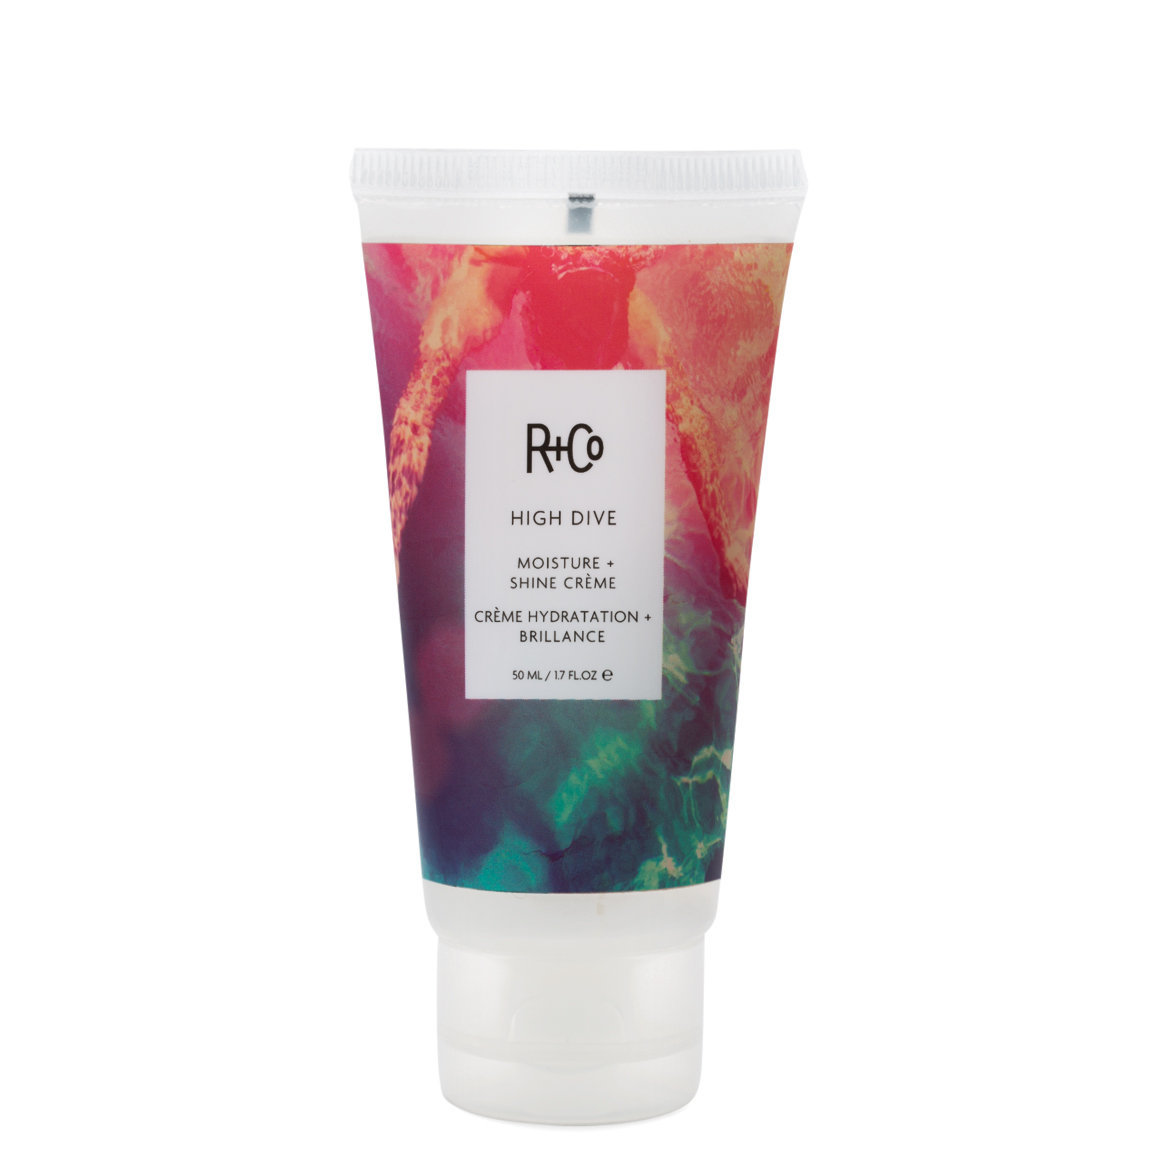 R+Co High Dive Moisture + Shine Cream 1.7 oz alternative view 1 - product swatch.